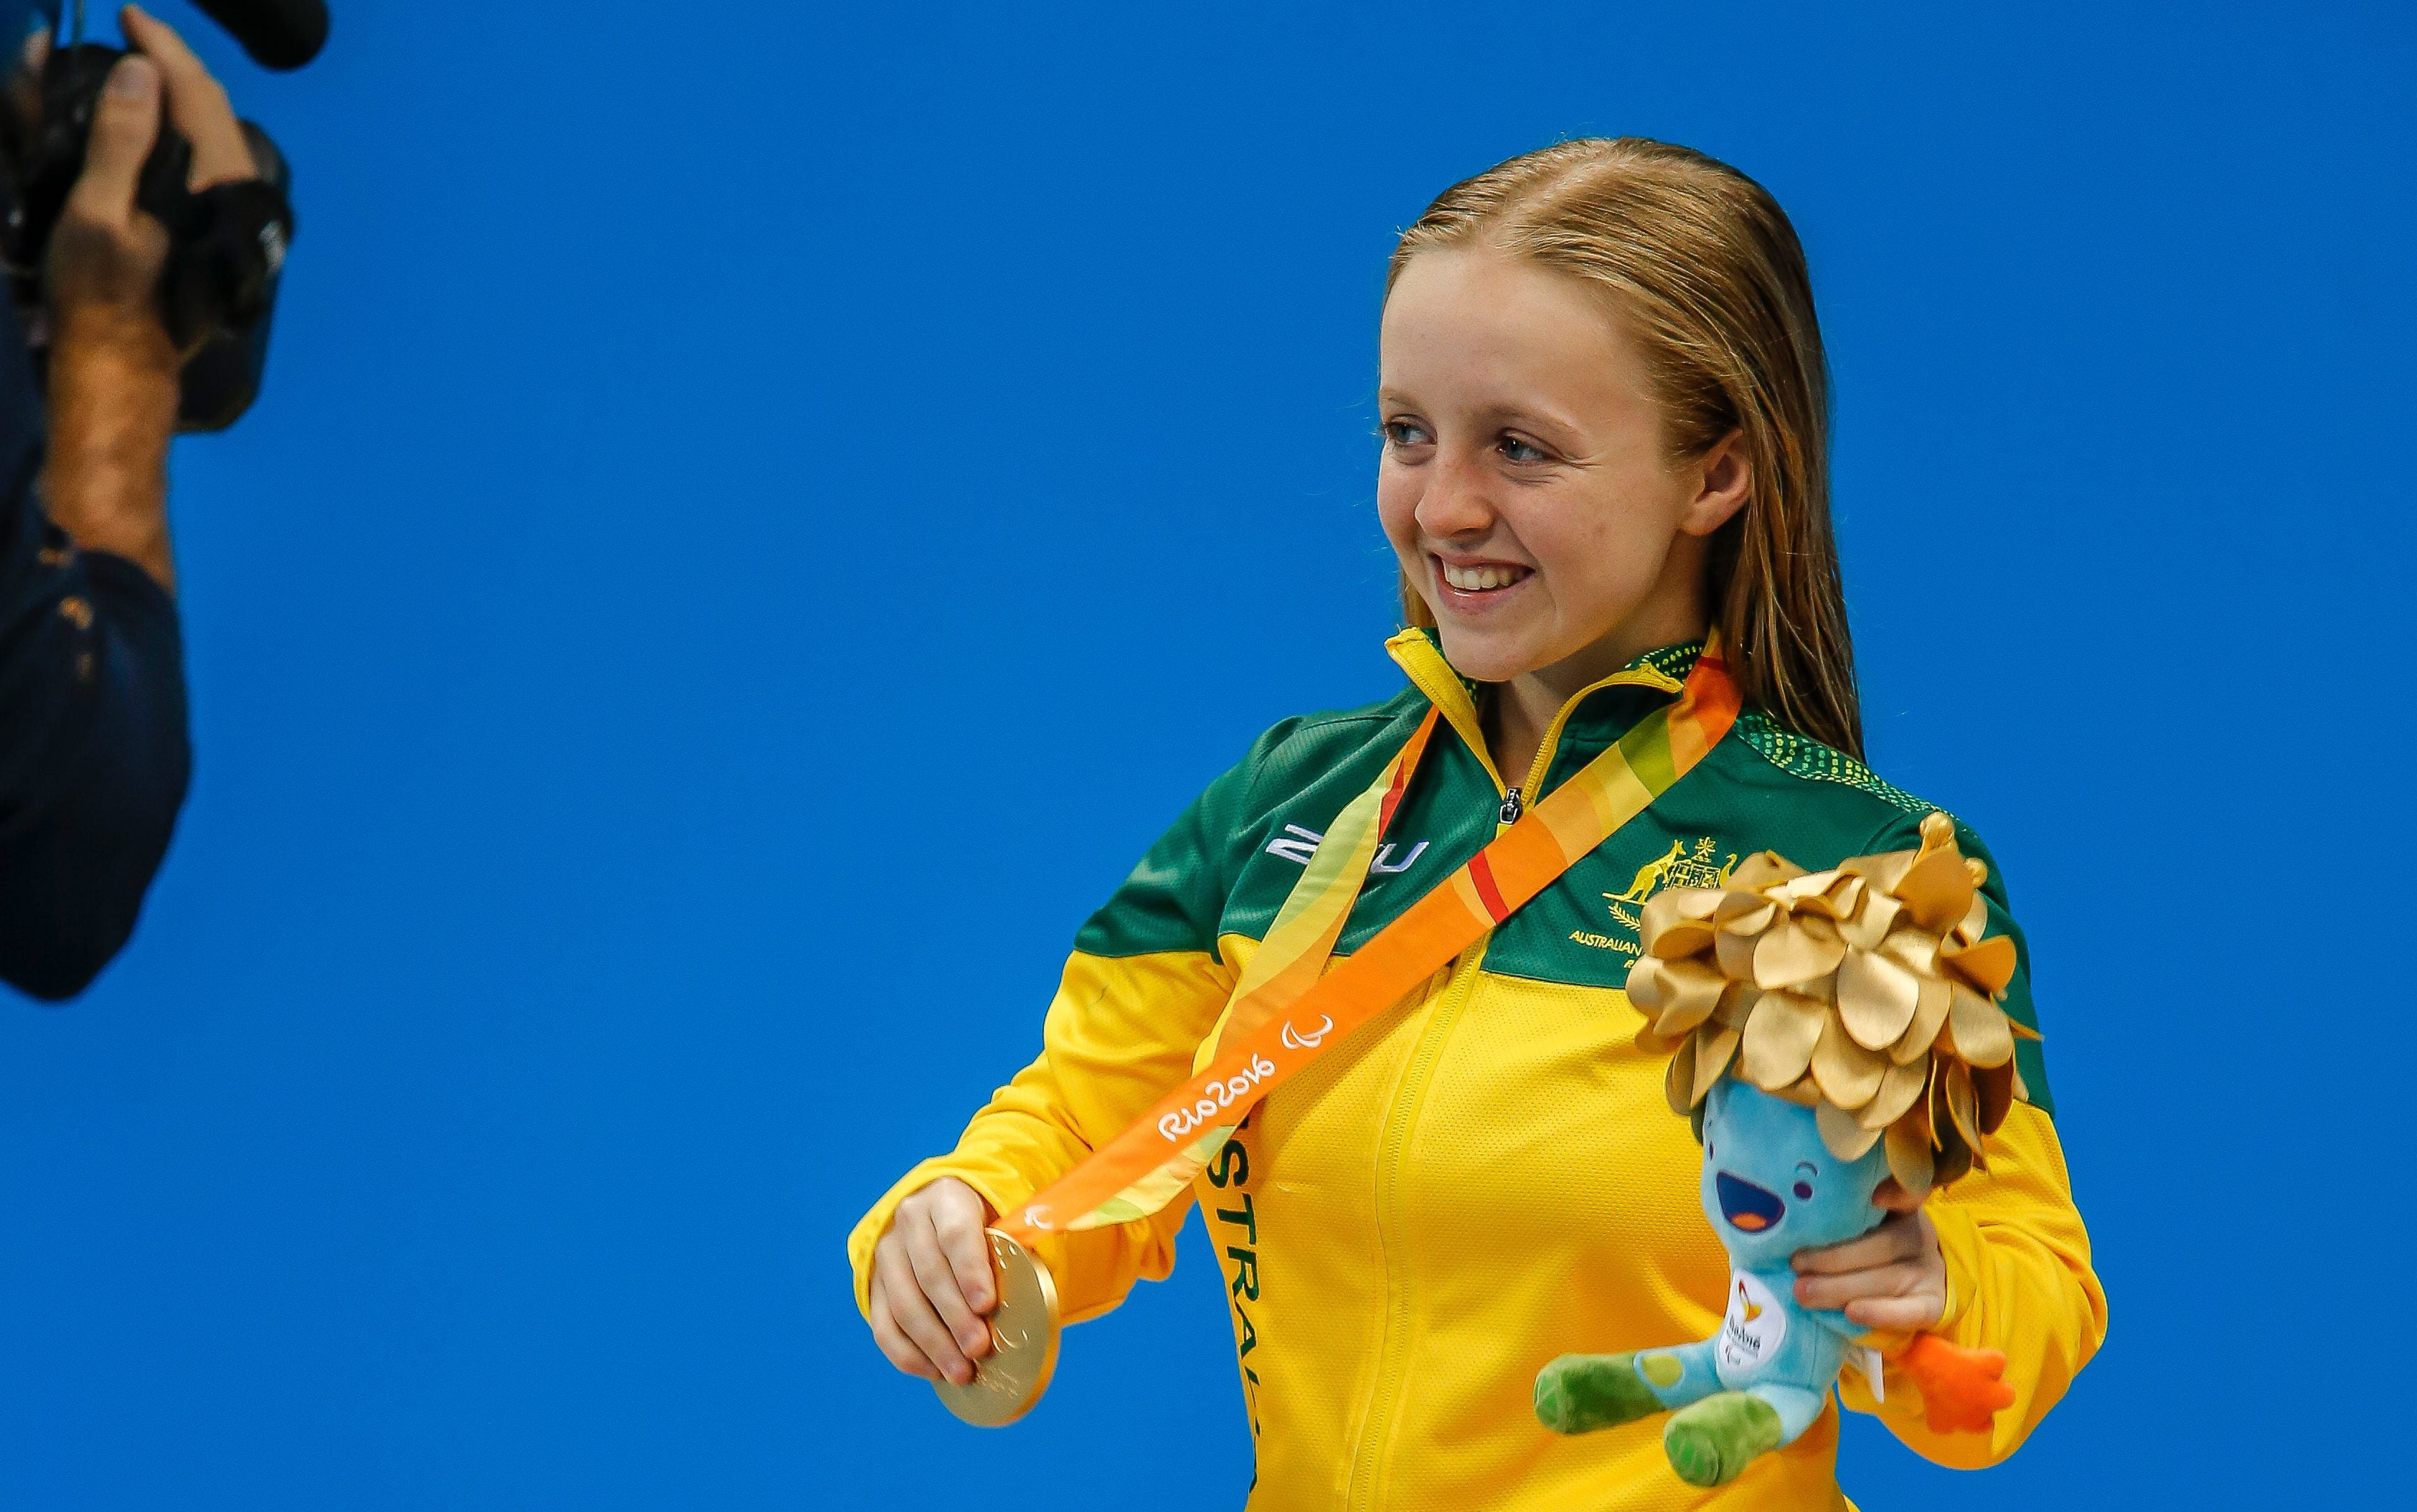 City of Sydney supports Tokyo-bound Paralympians